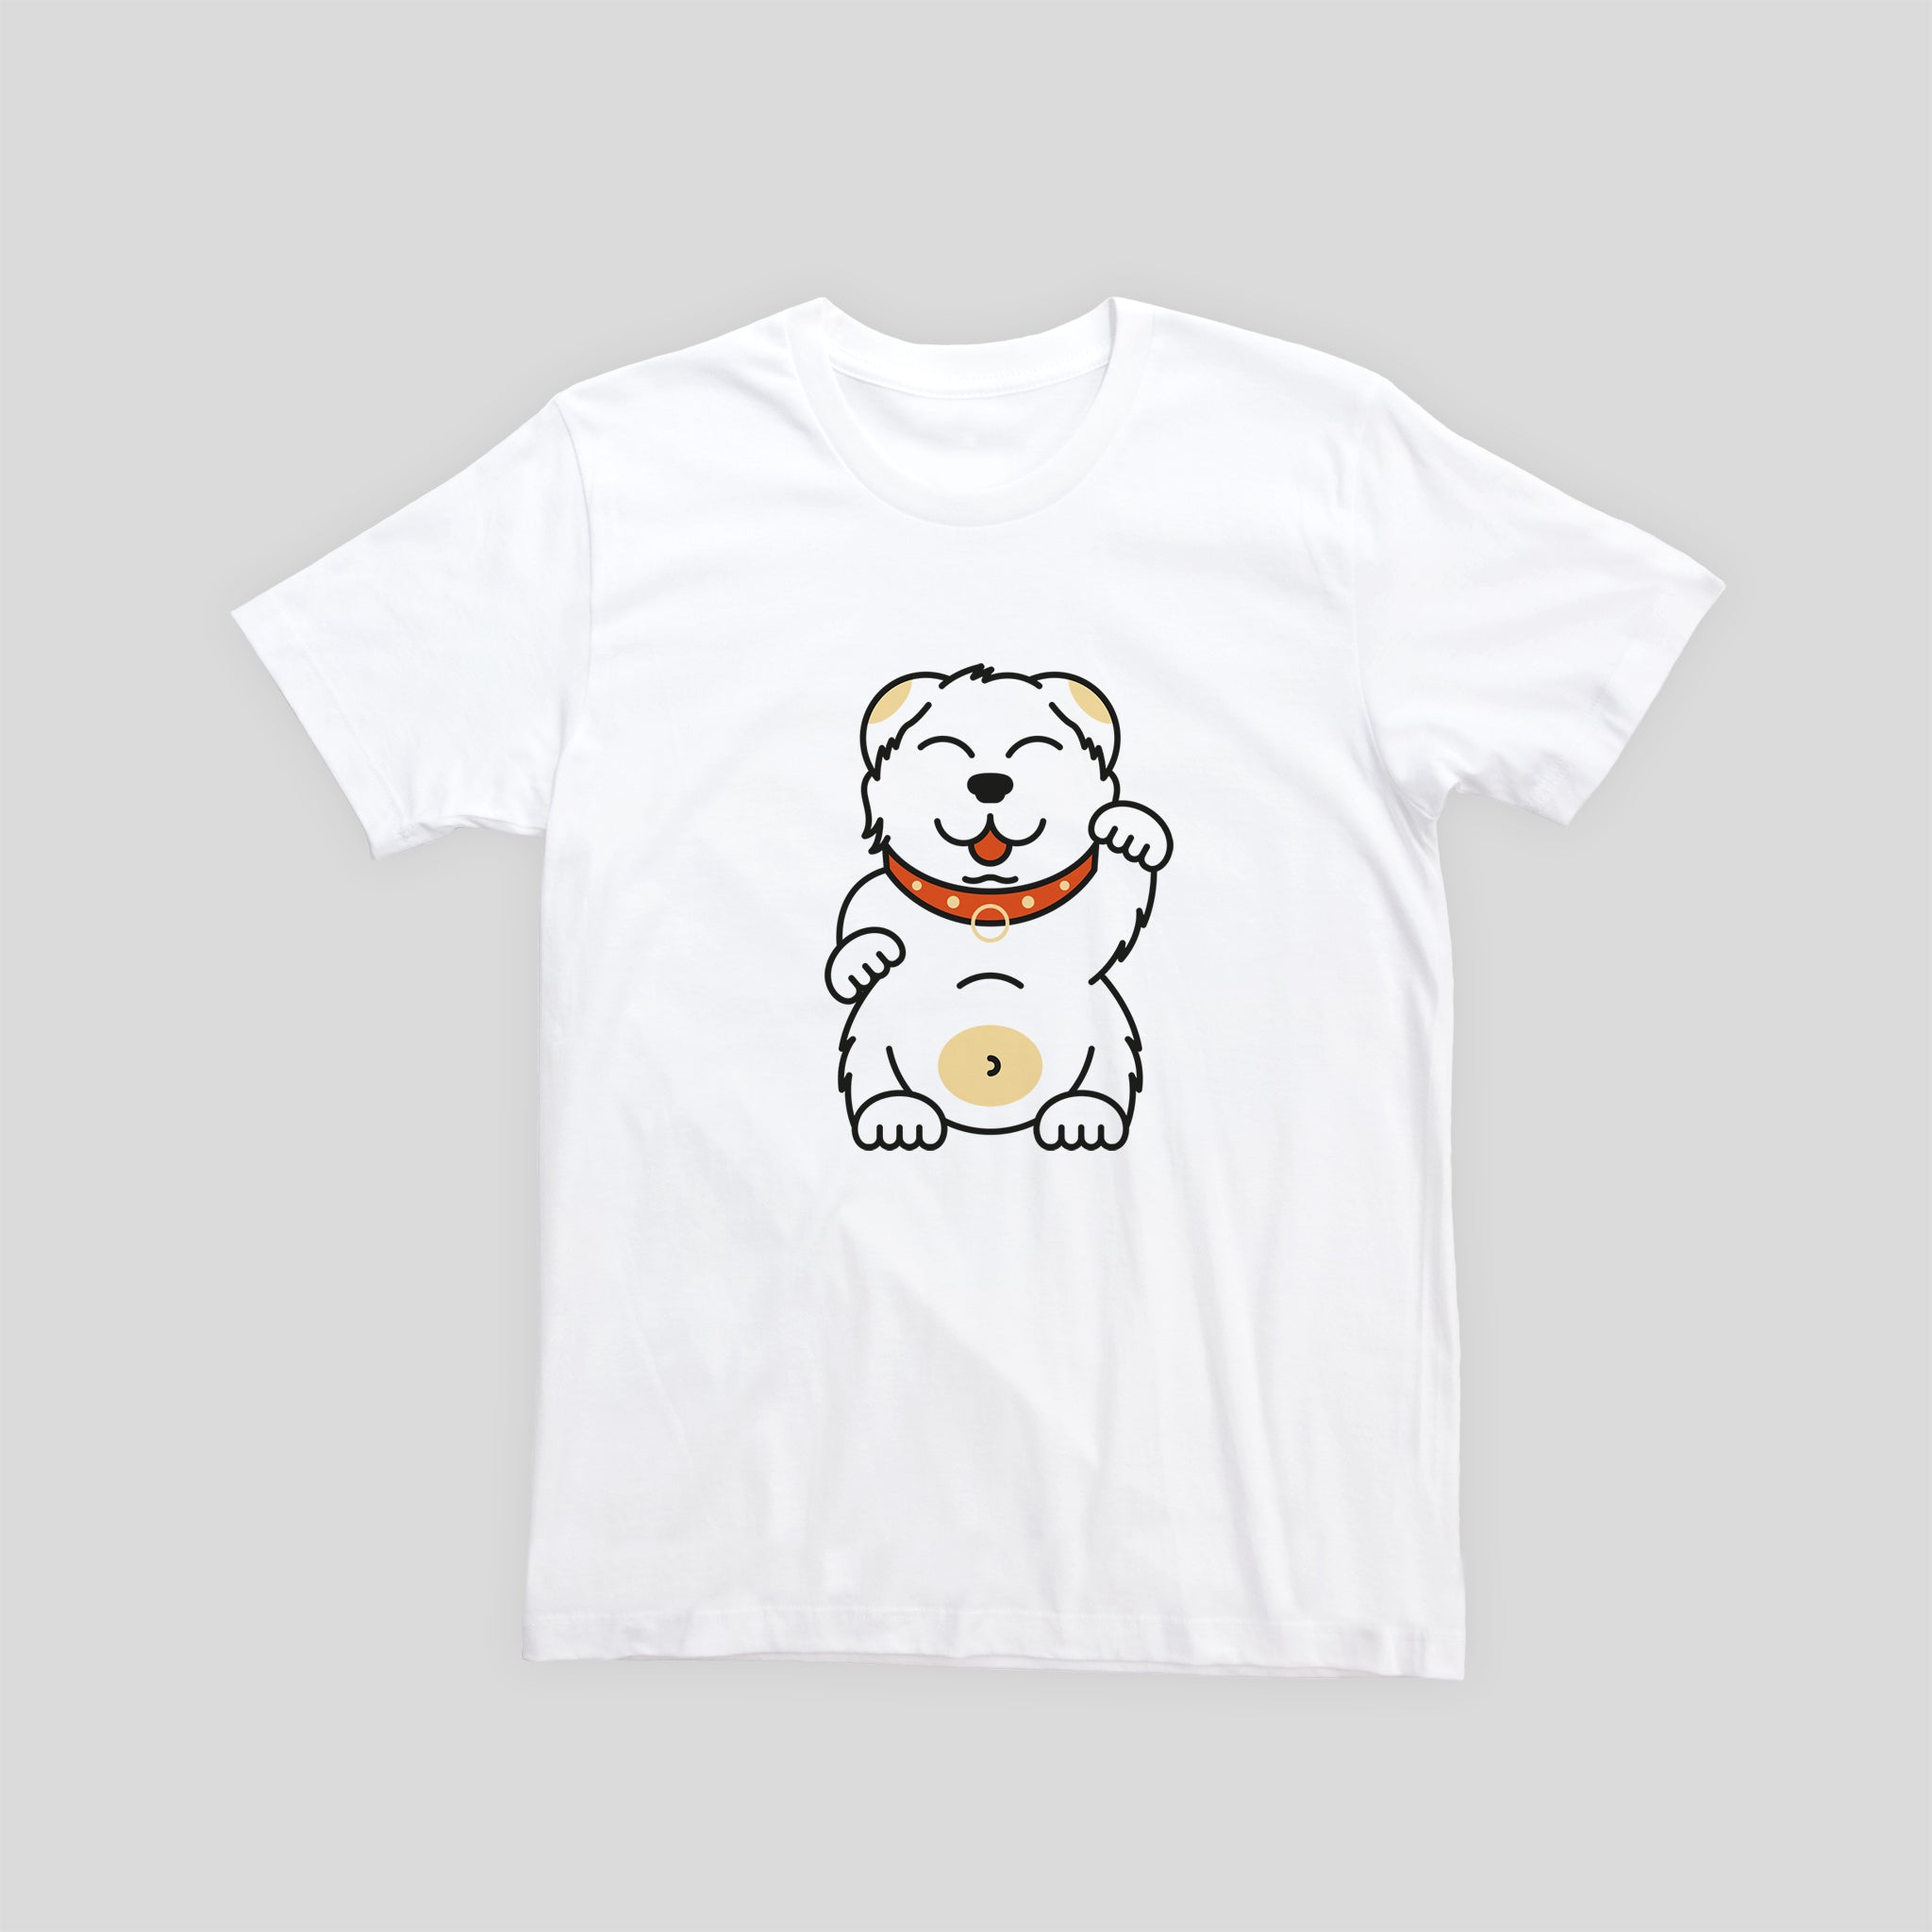 Waving Friend - Kids T-shirt